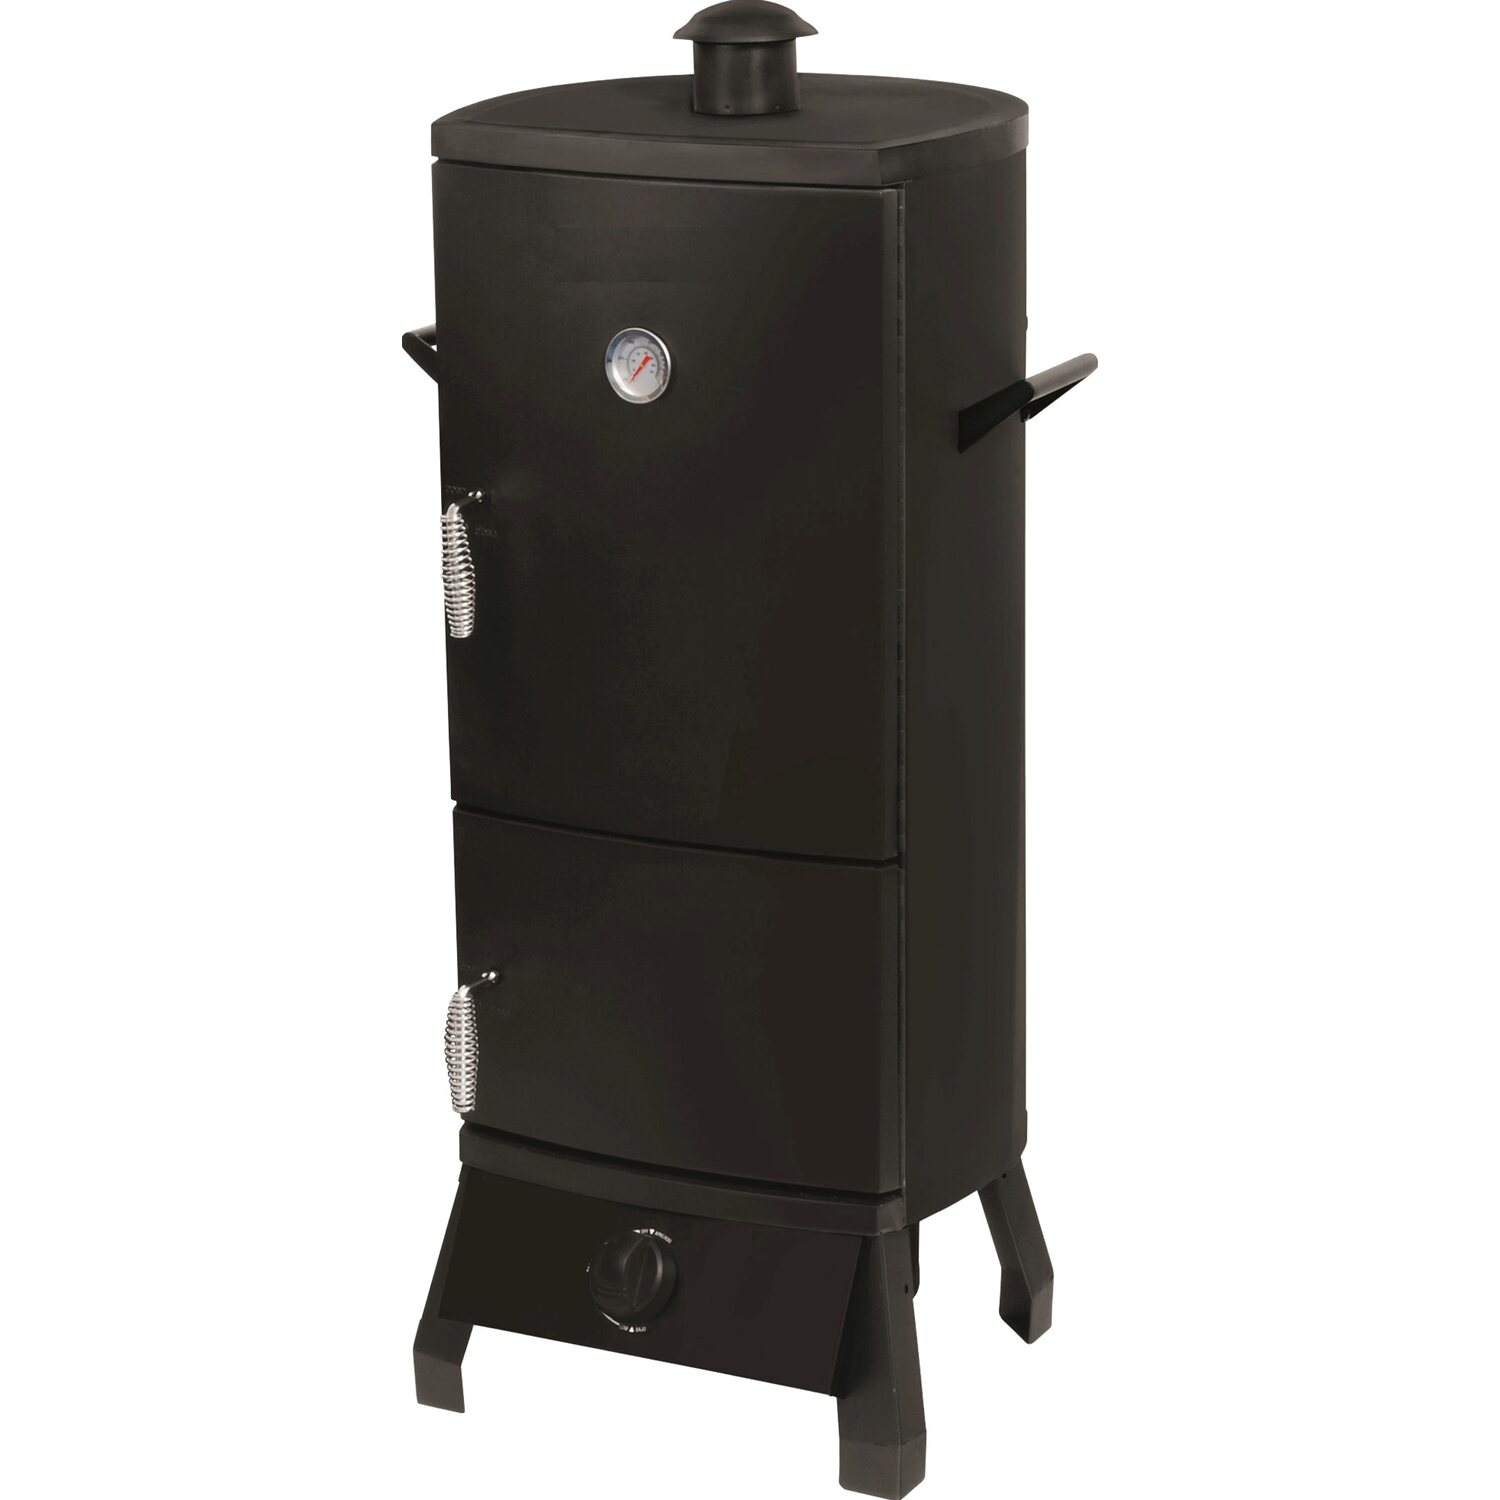 el fuego gasgrill smoker portland mit 1 brenner schwarz kaufen bei obi. Black Bedroom Furniture Sets. Home Design Ideas